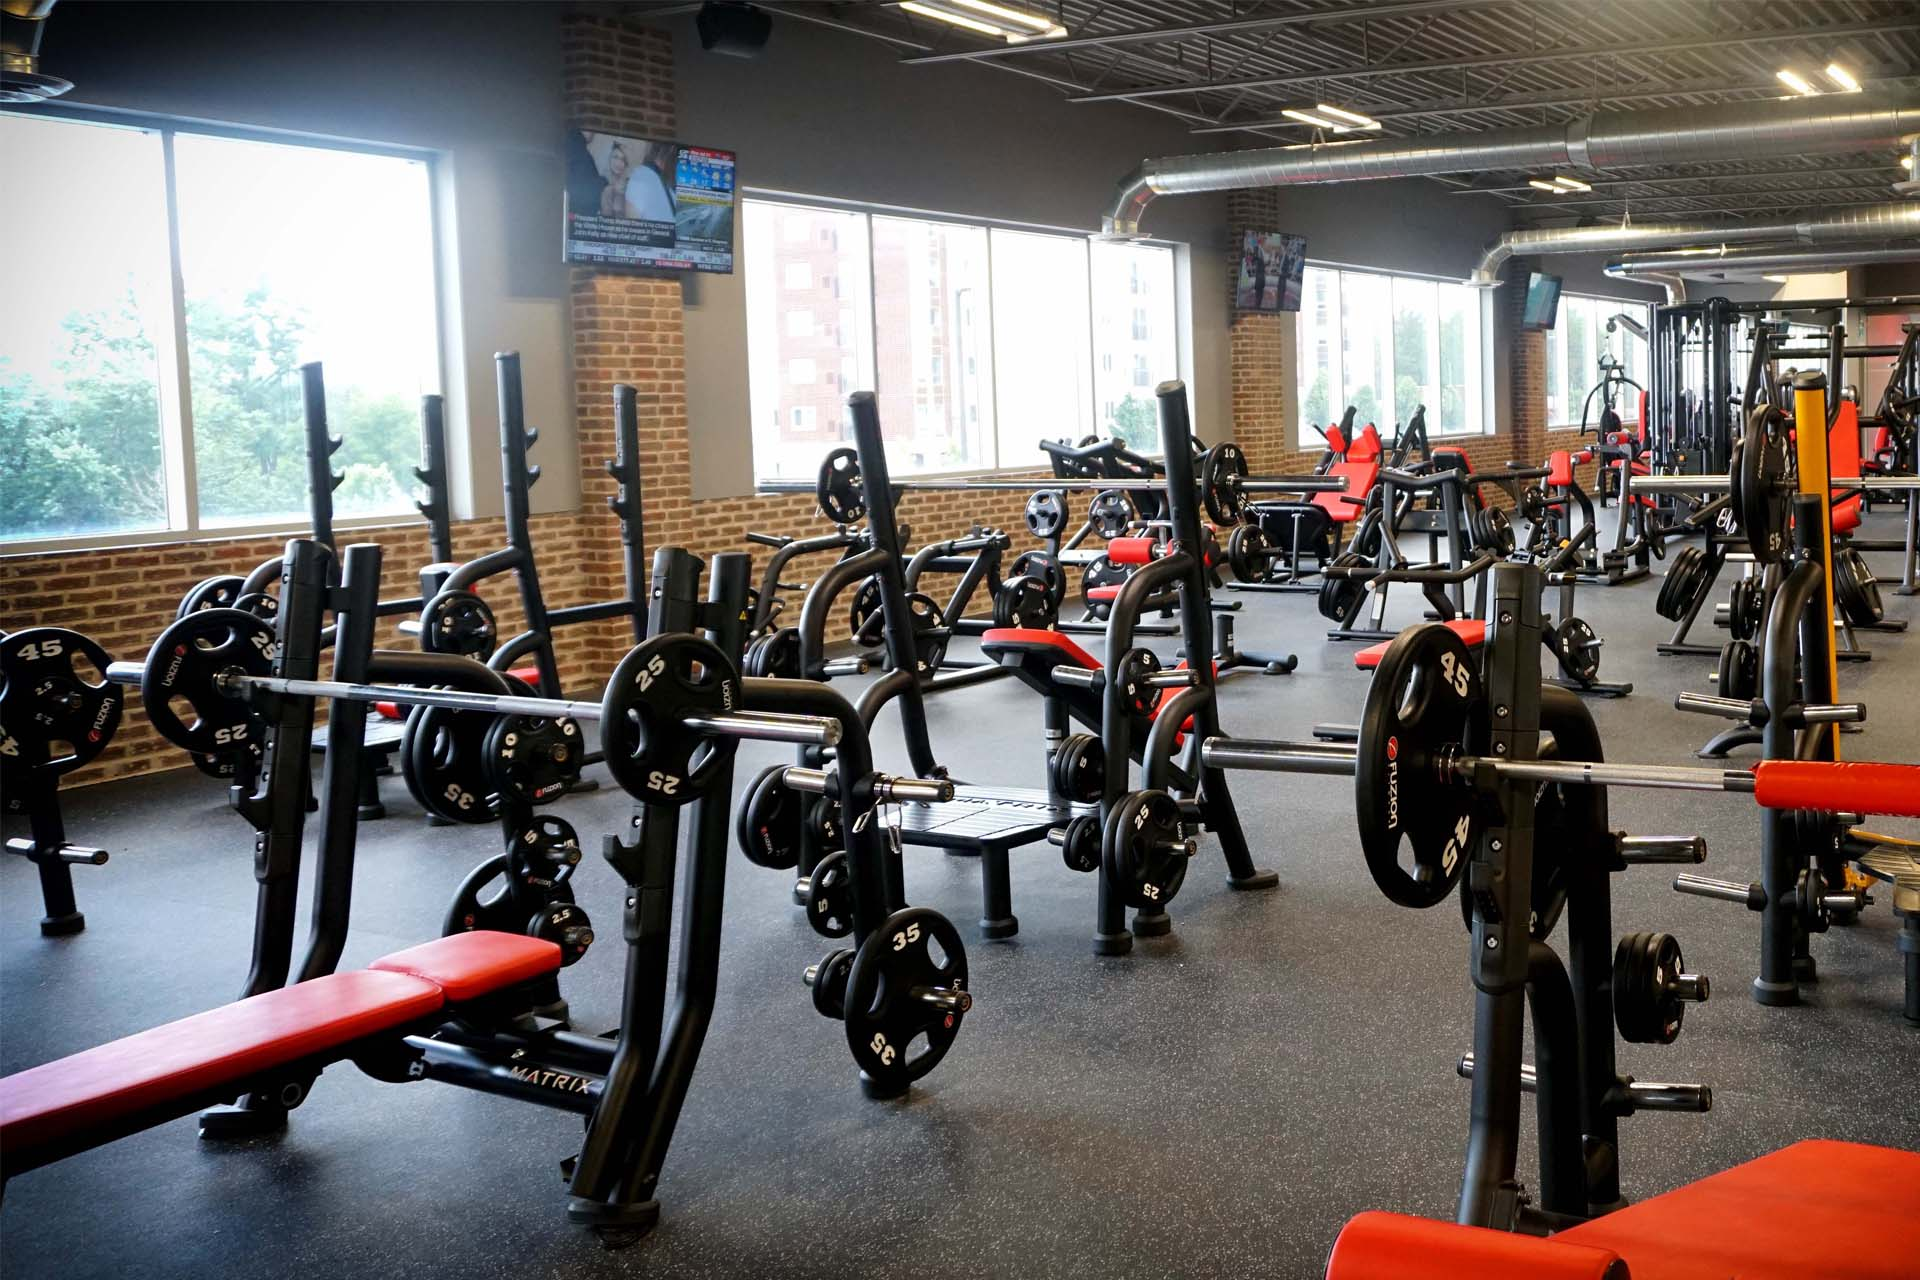 weight lifting area with exercise machines